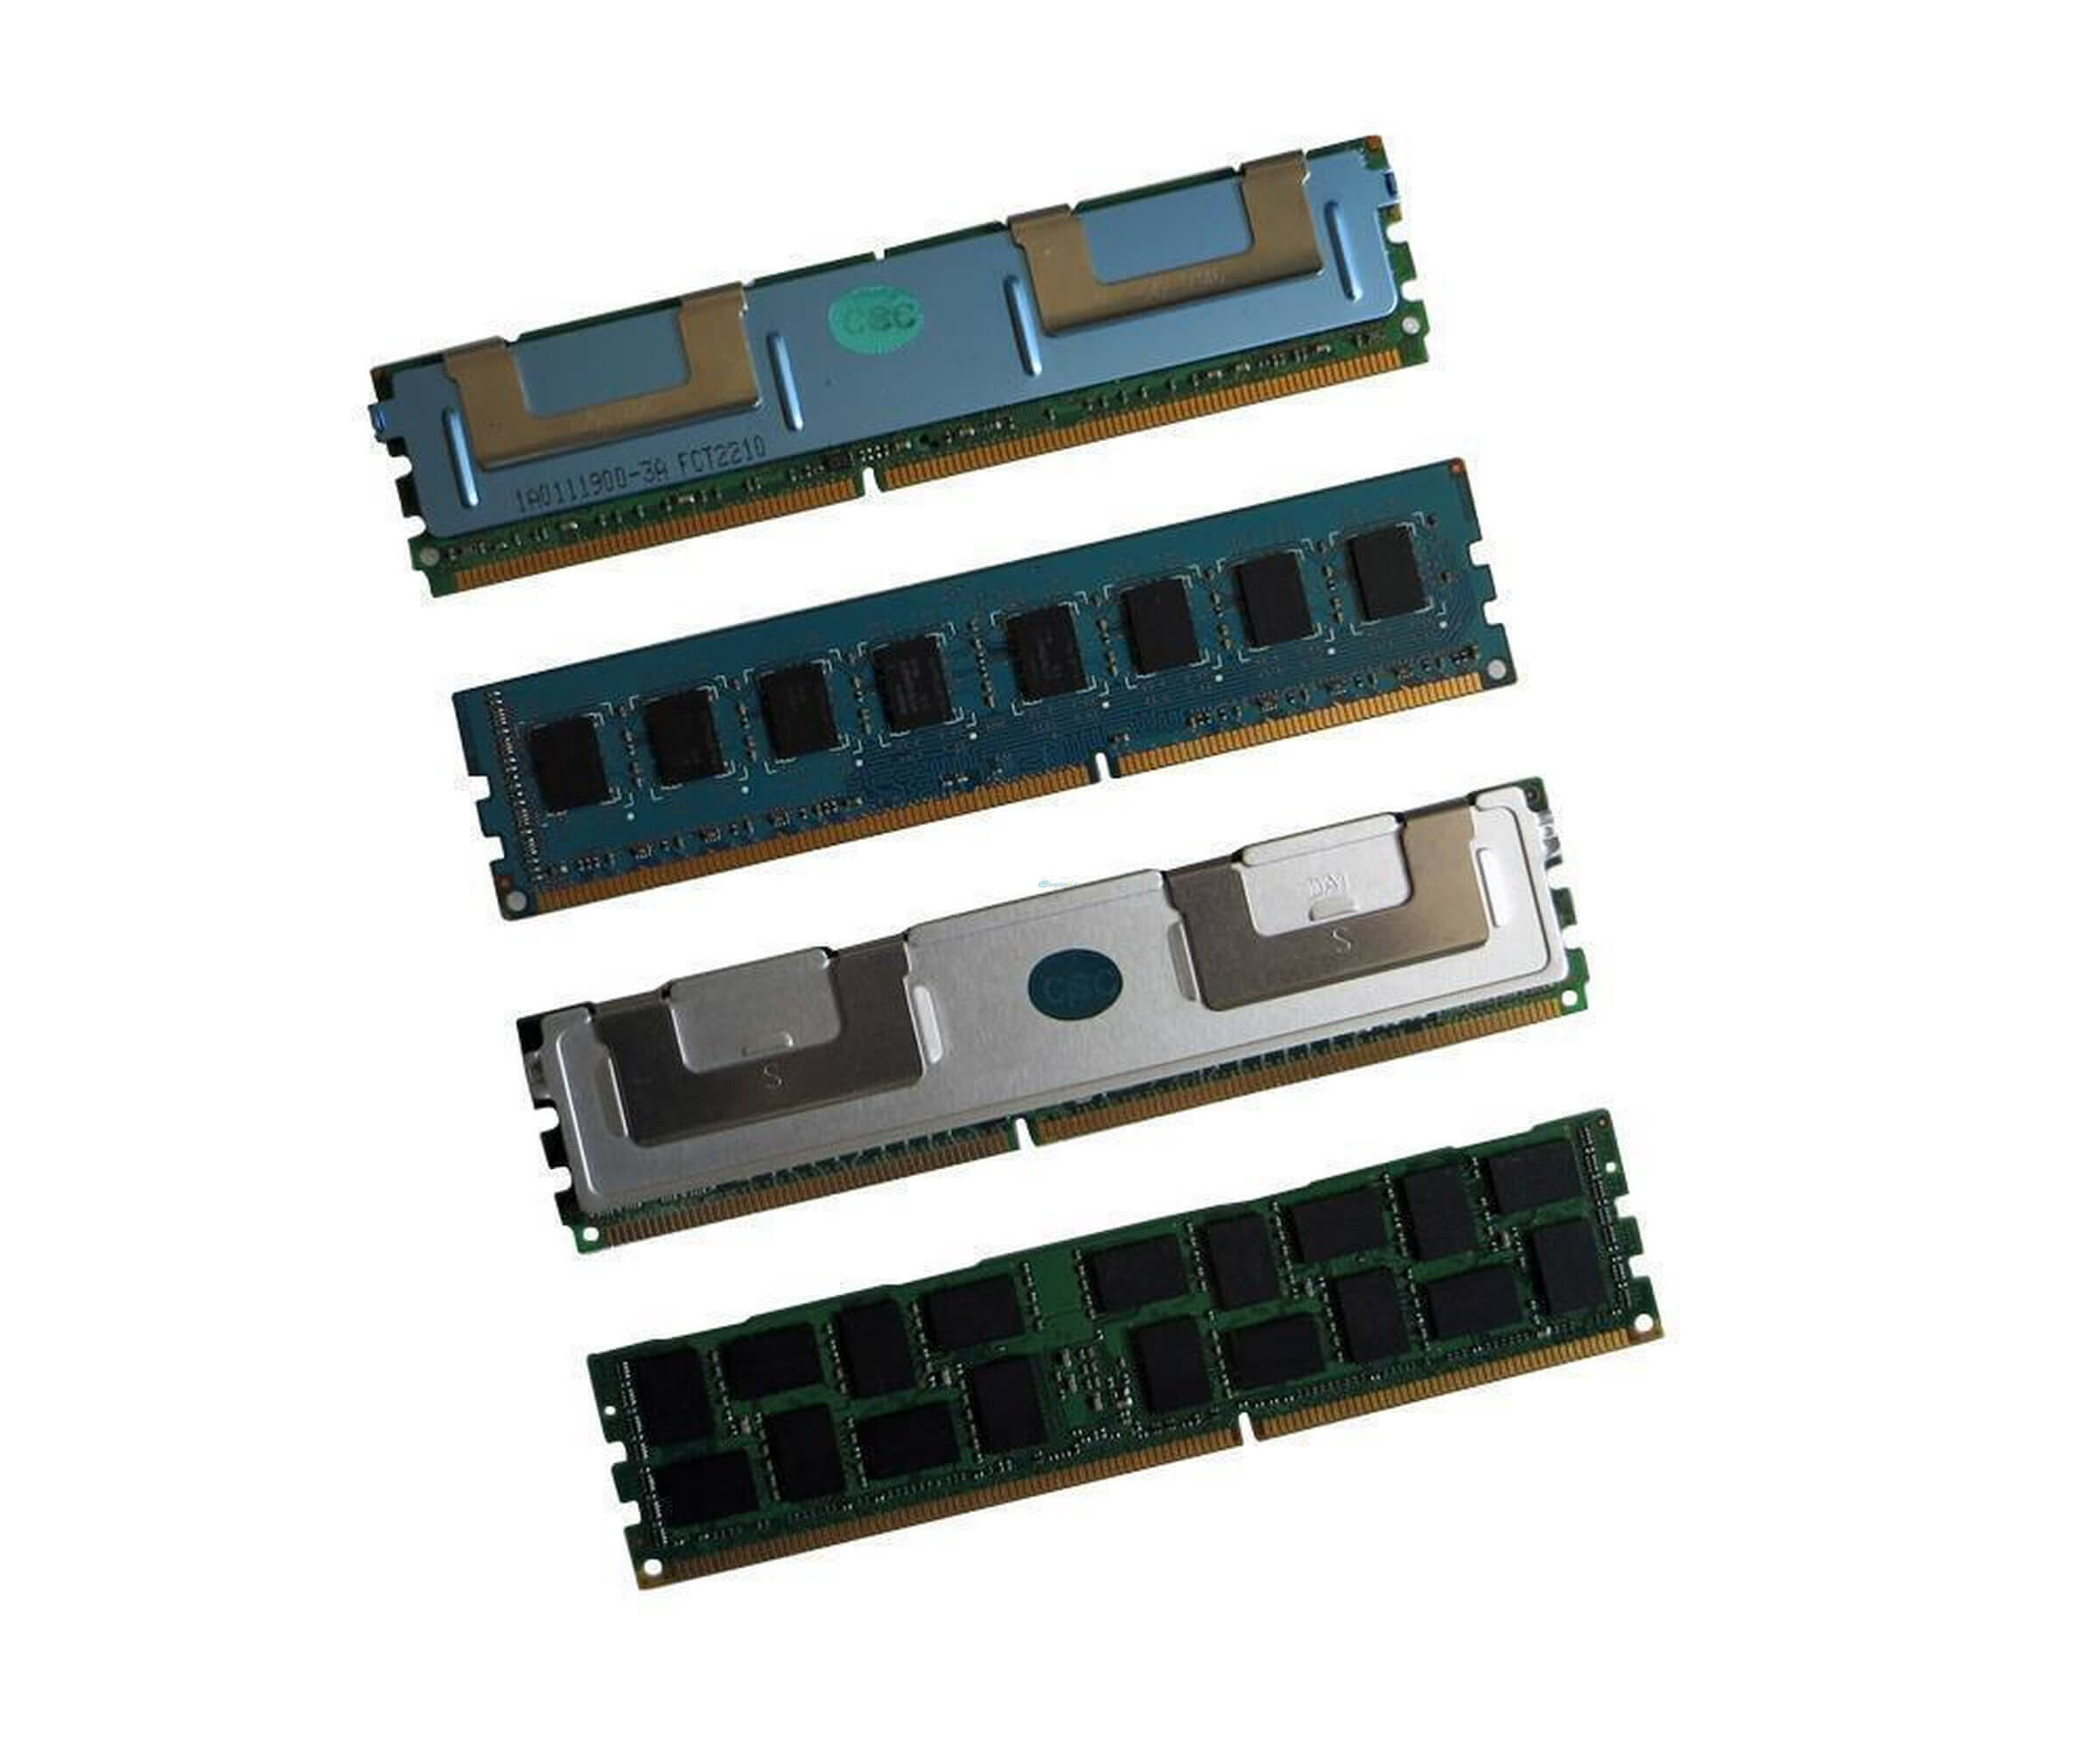 Sun X8022A Memory Kit - 2 GB (2x 1 GB) - PC-3200 - DIMM 184-PIN - DDR SDRAM